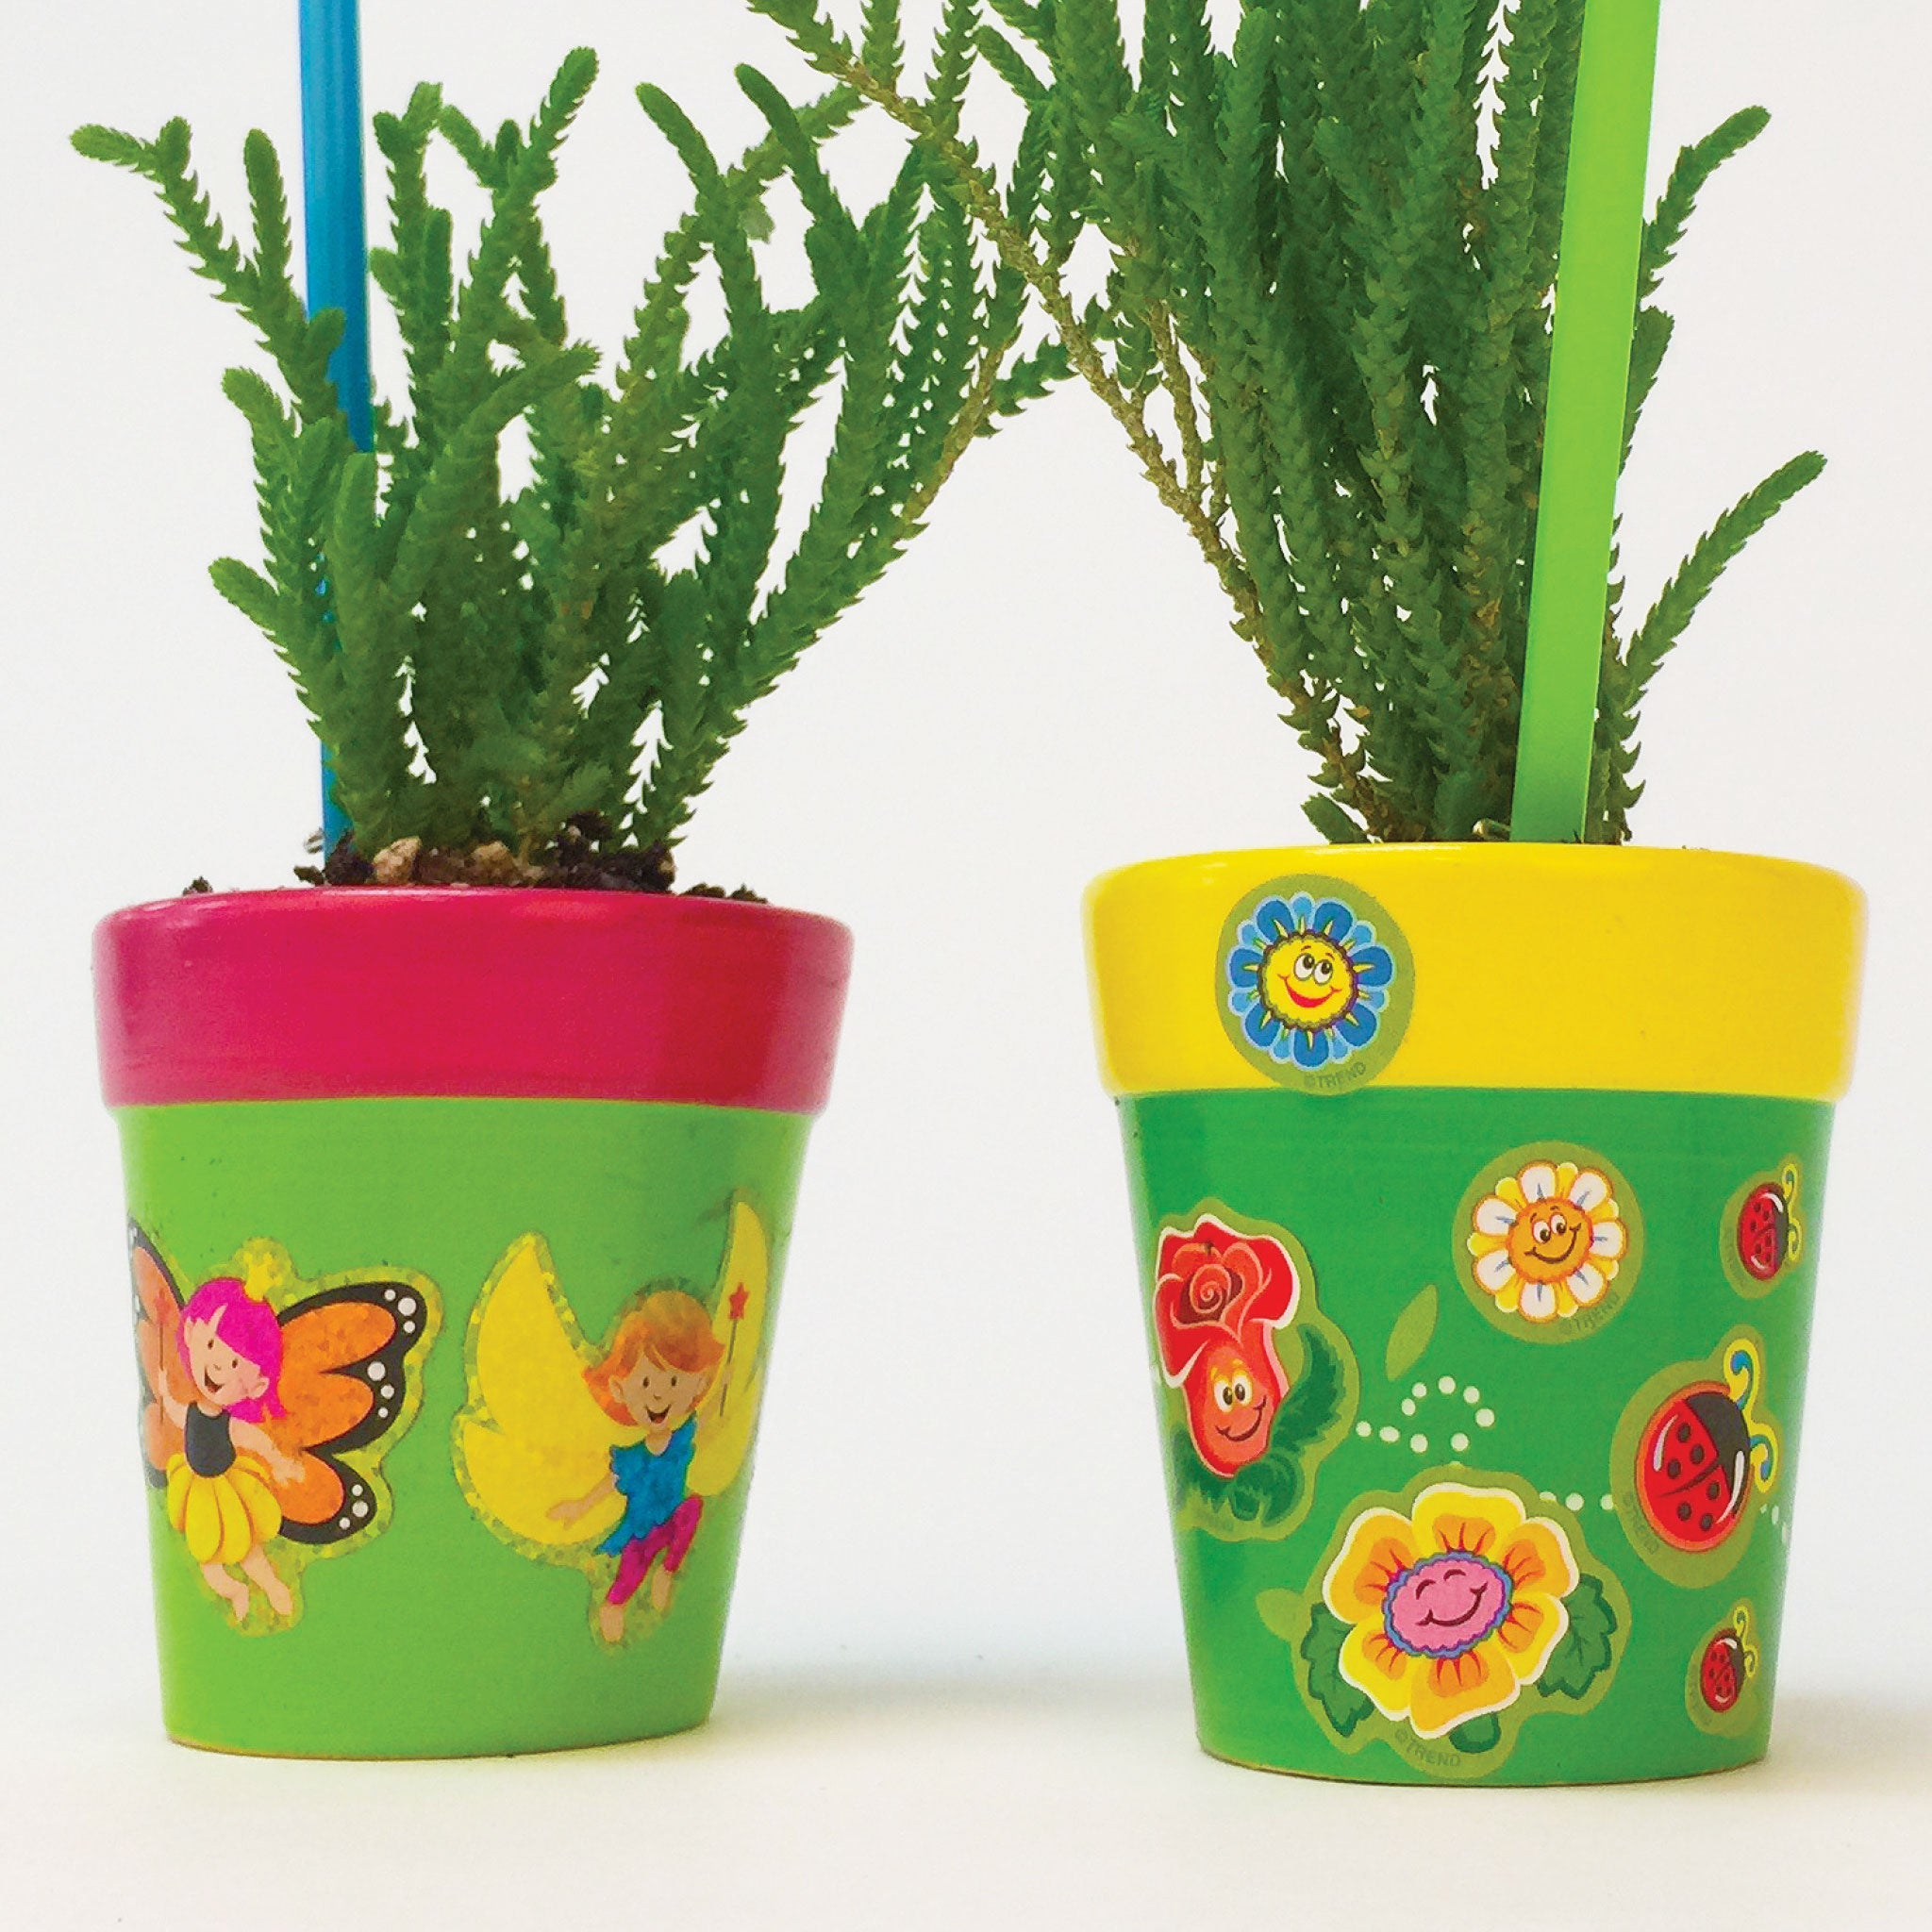 decorate flower pots stickers for spring kid project